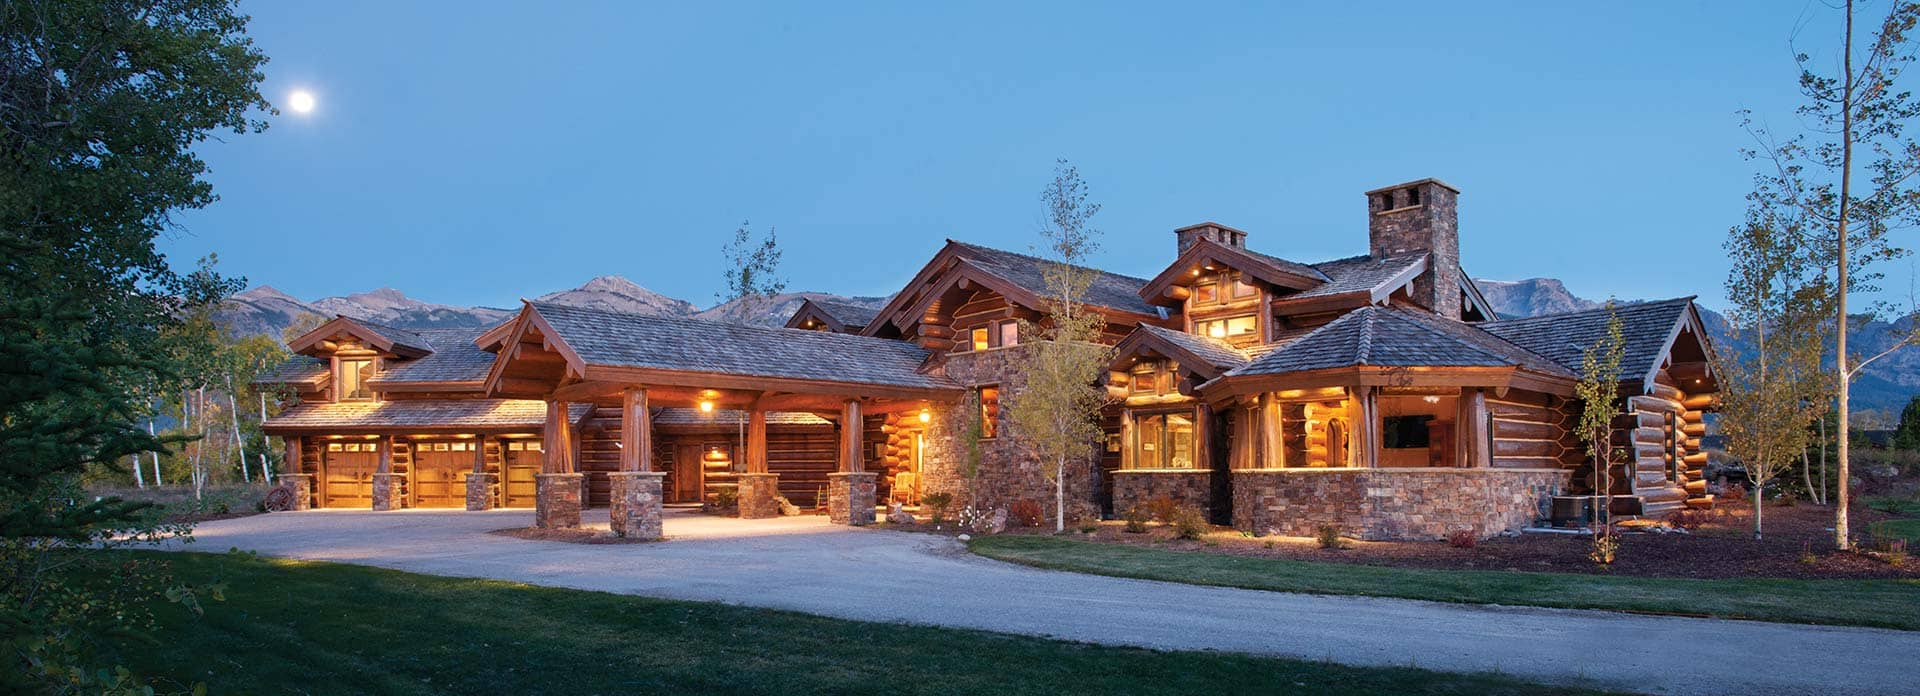 florida cracker style homes south west adobe style home cracker style log homes